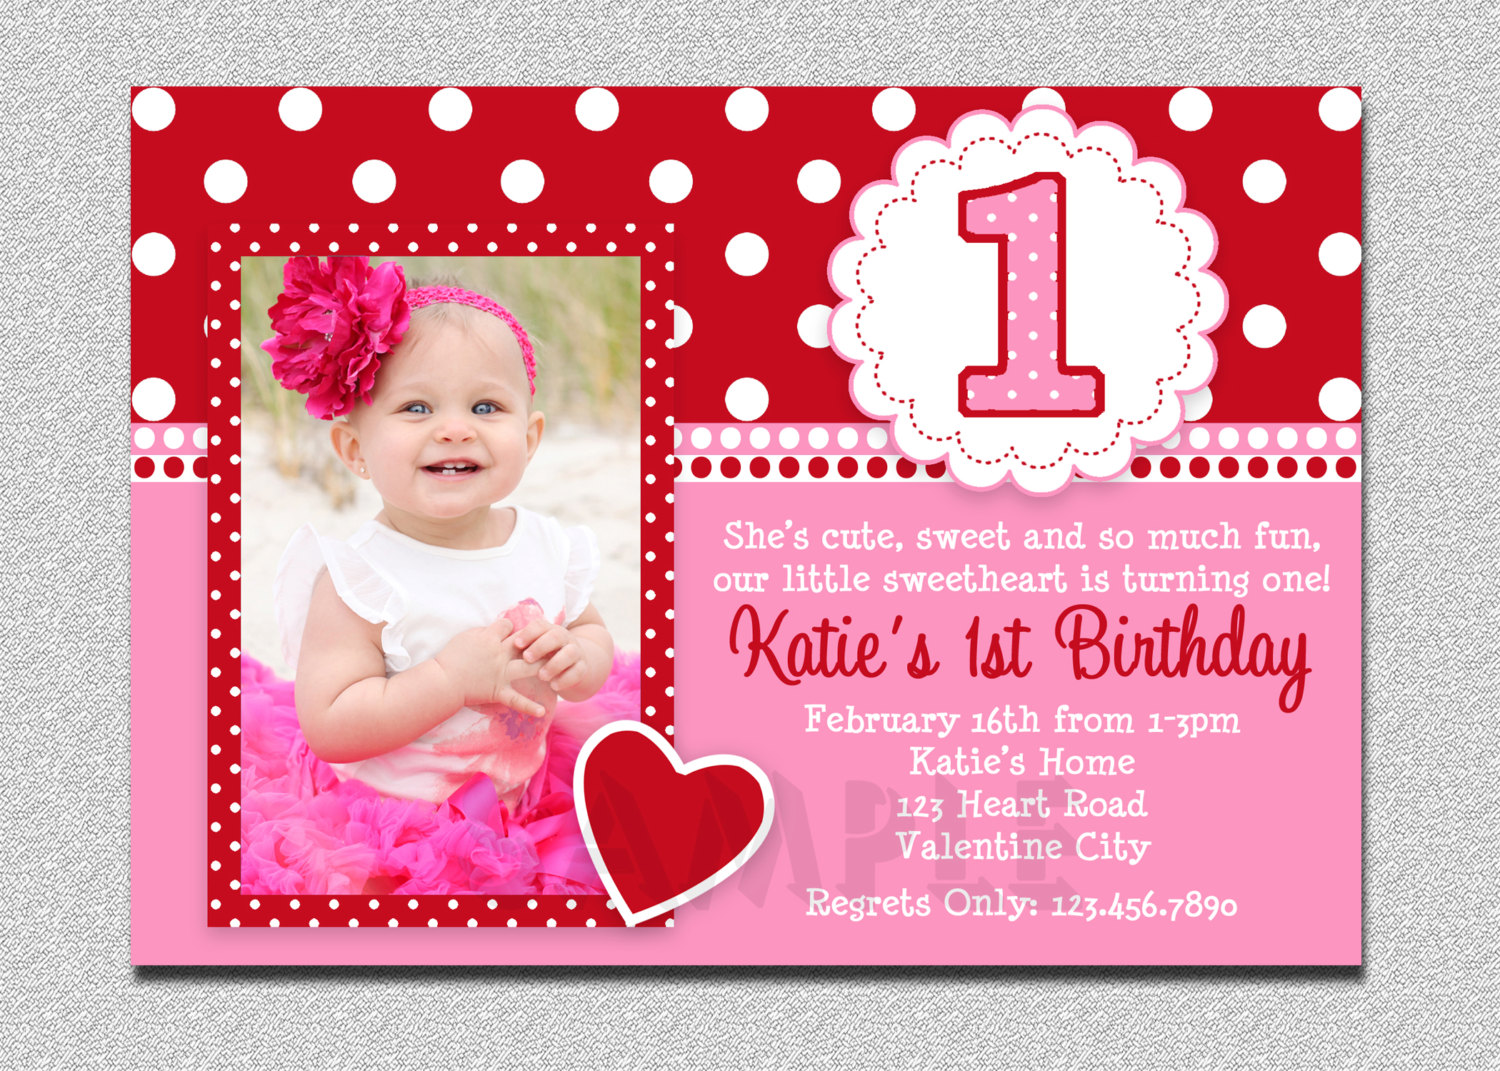 birthday invitation card with photo ; 1st-birthday-invitation-card-with-Birthday-invitations-ideas-for-your-cards-inspiration-19